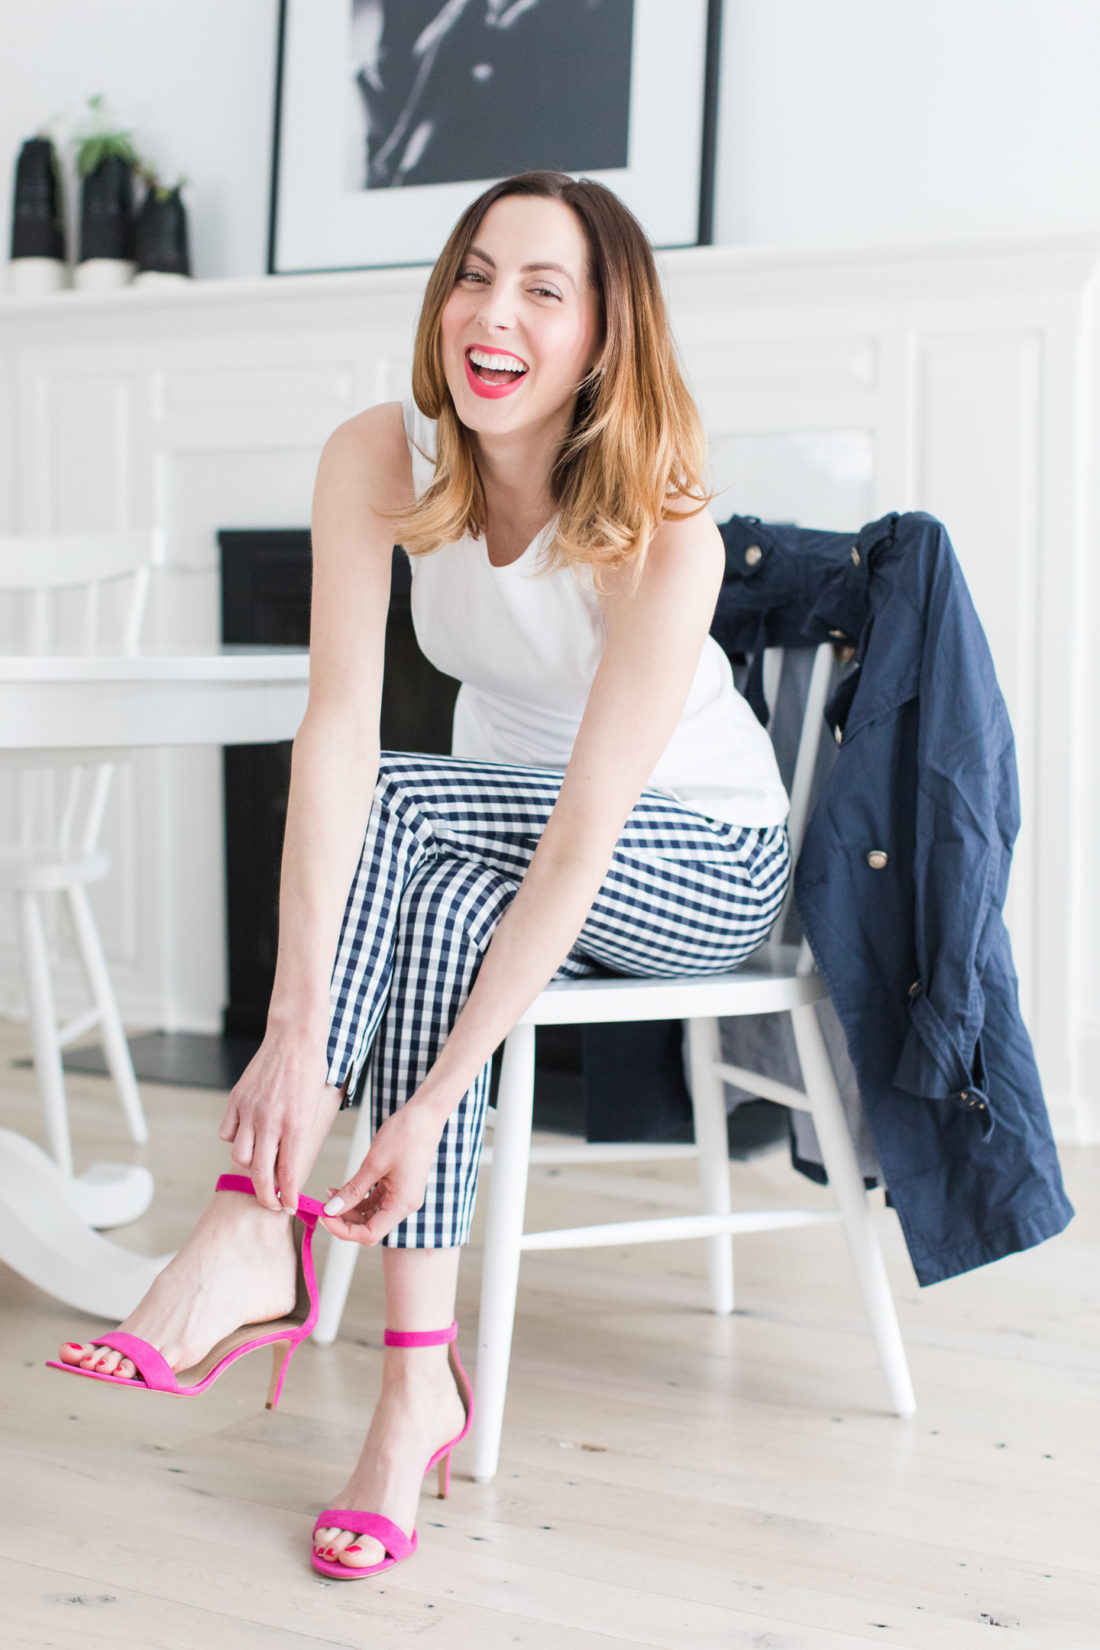 247099fb1bc6b Eva Amurri Martino wears navy and white gingham pants, a white top, and  fastens